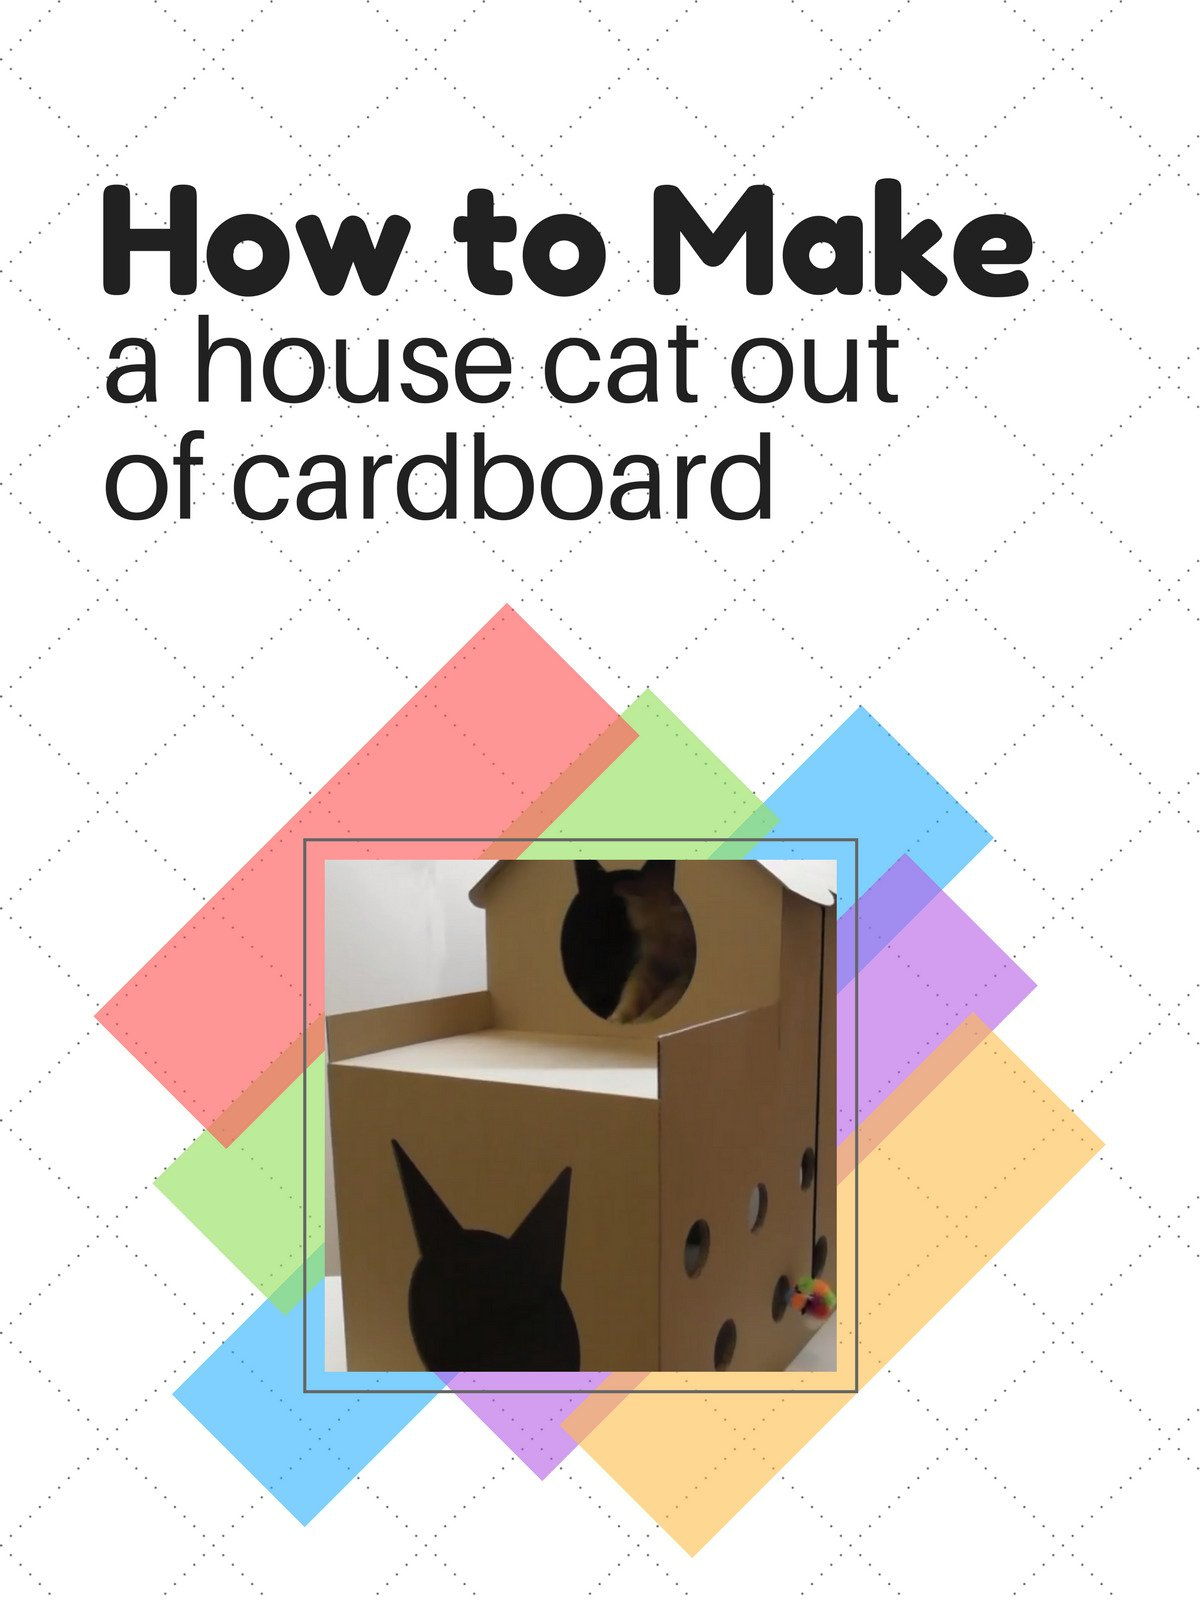 How to make a house cat out of cardboard